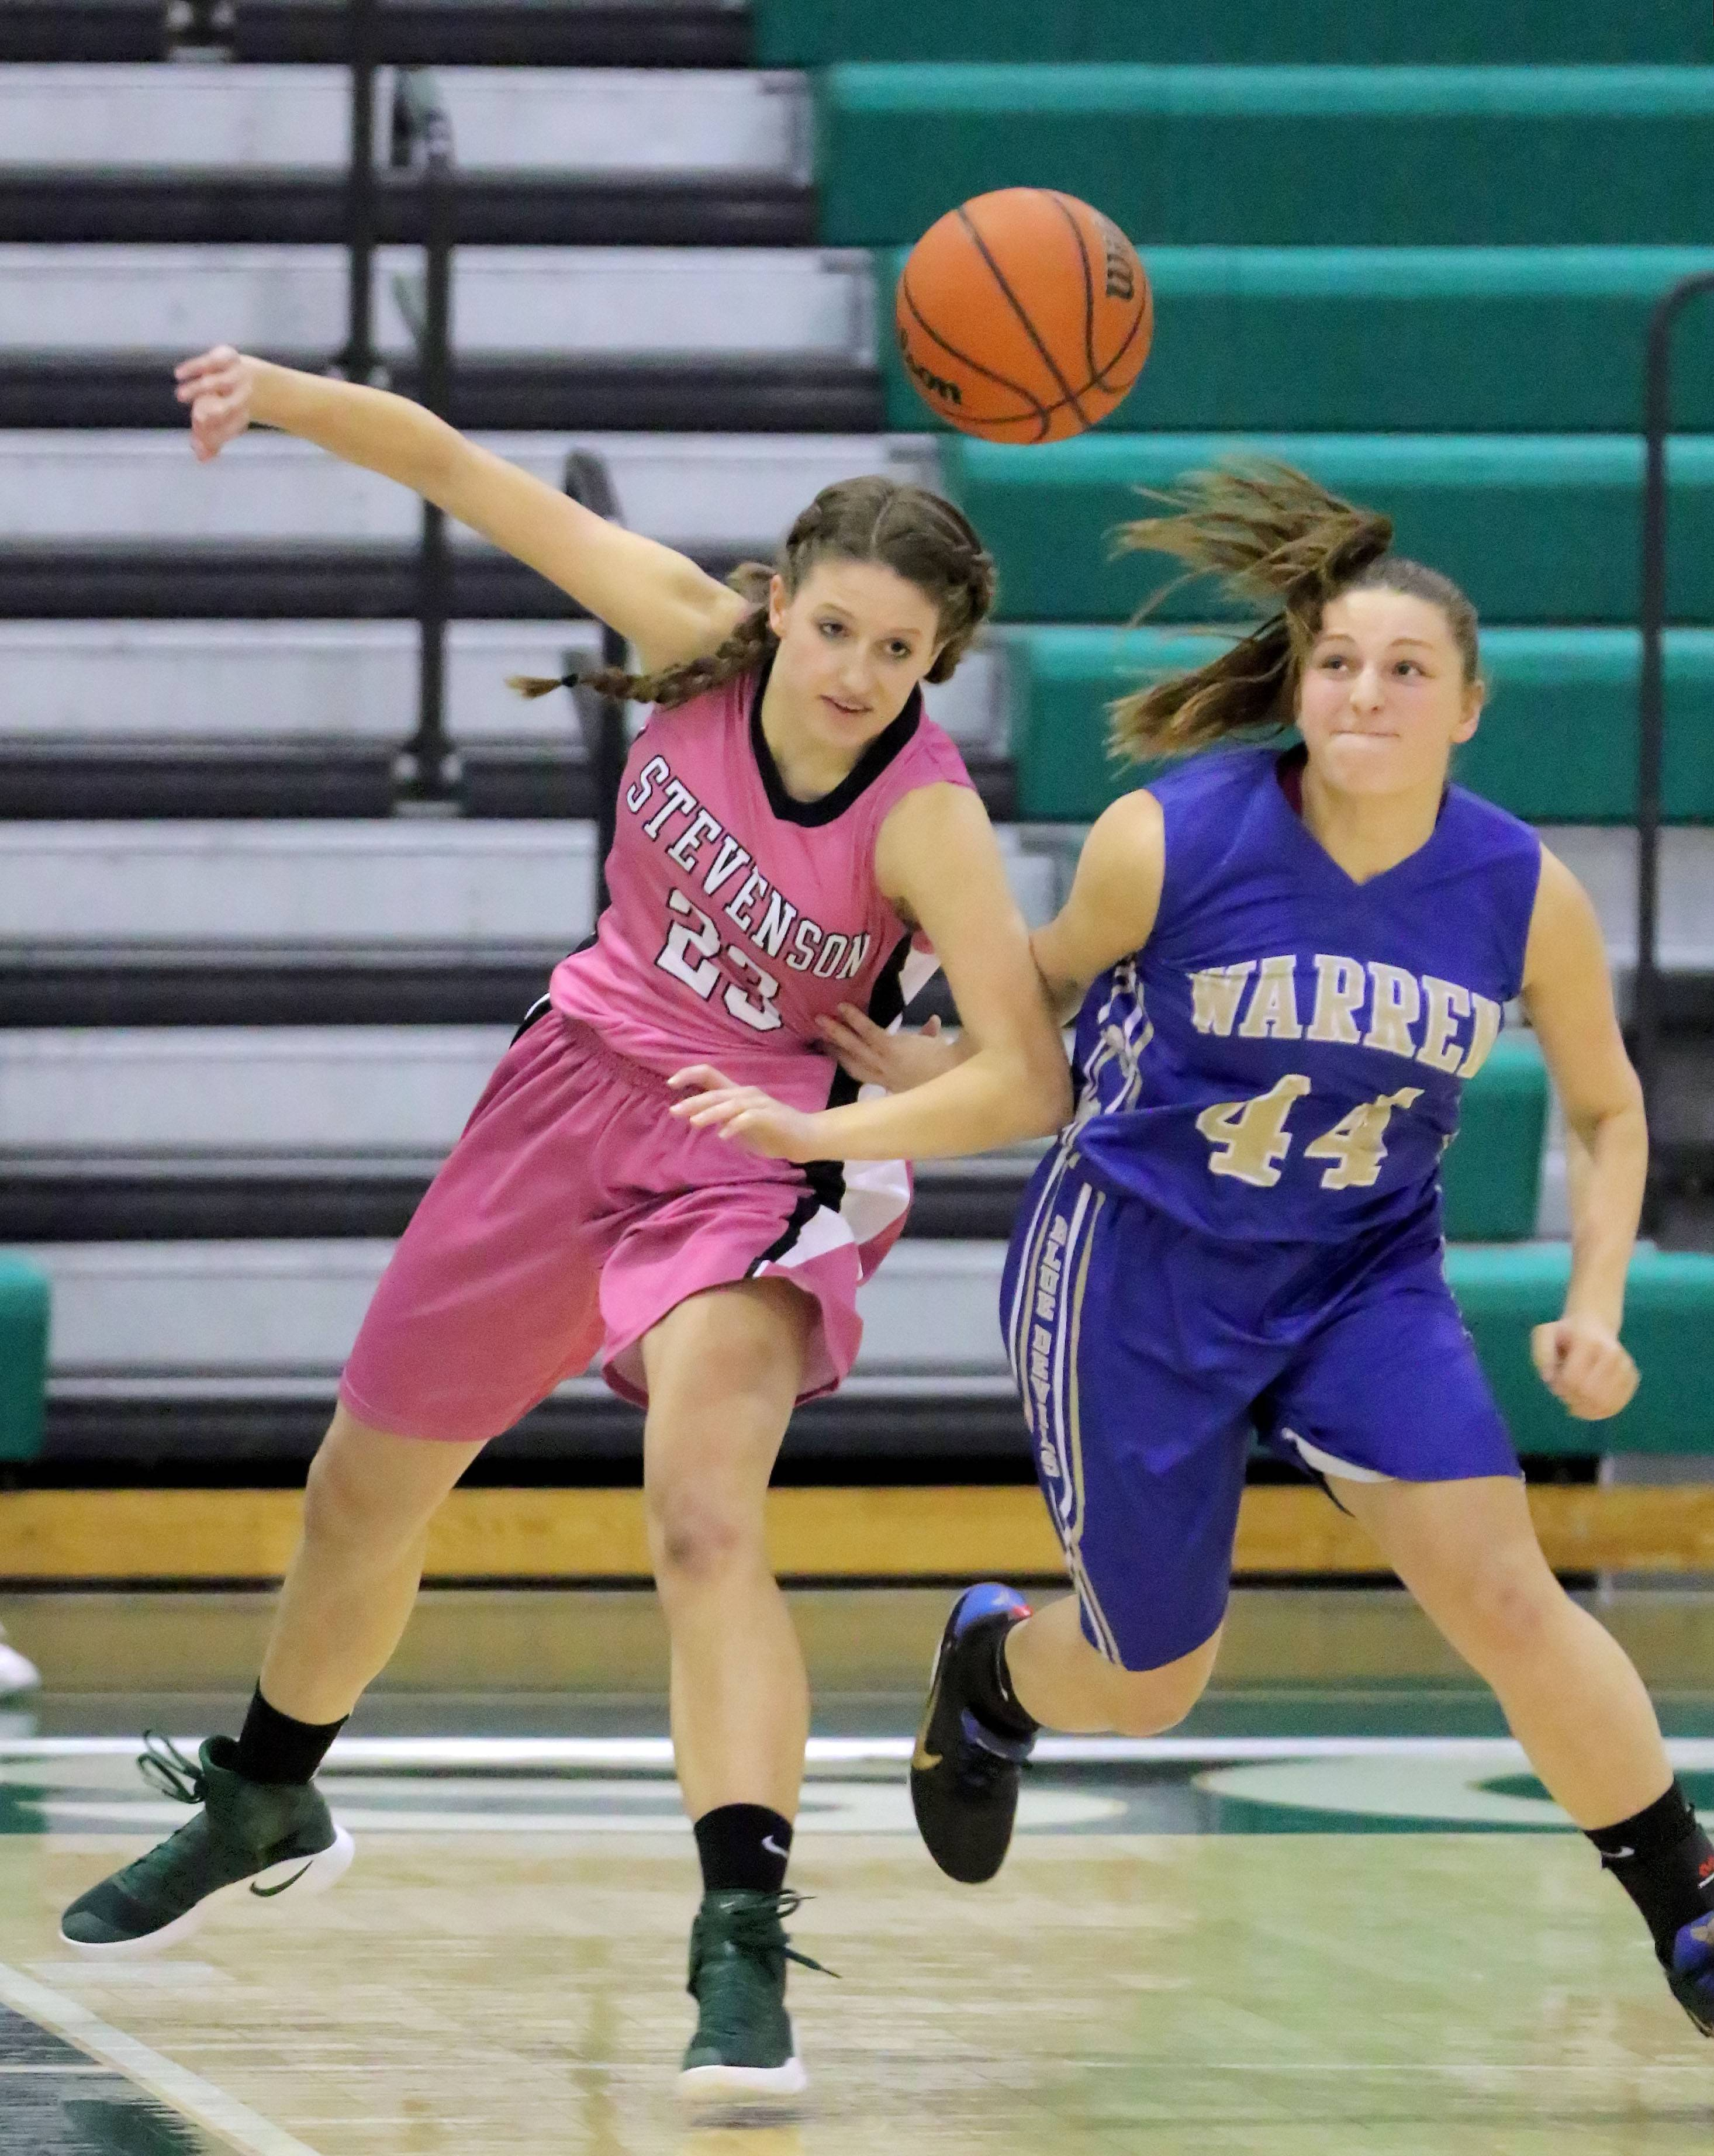 Stevenson's Isabella Paldrmic, left, and Warren's Jordyn Hughes battle for a loose ball during their game Wednesday at Stevenson High School in Lincolnshire.